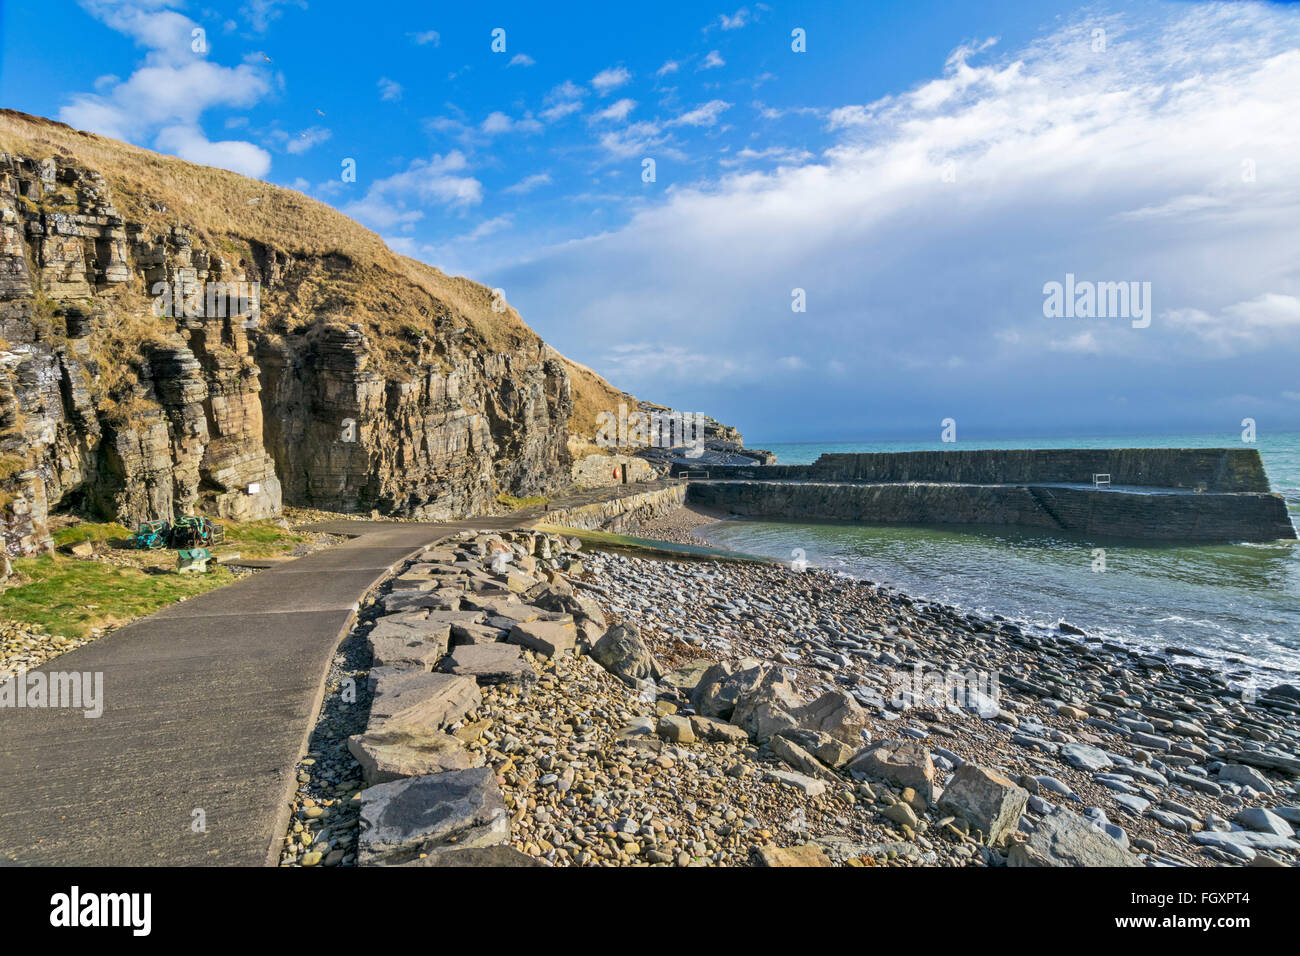 LATHERONWHEEL HARBOUR THE QUAY AND ROCKY SHORELINE CAITHNESS SCOTLAND - Stock Image